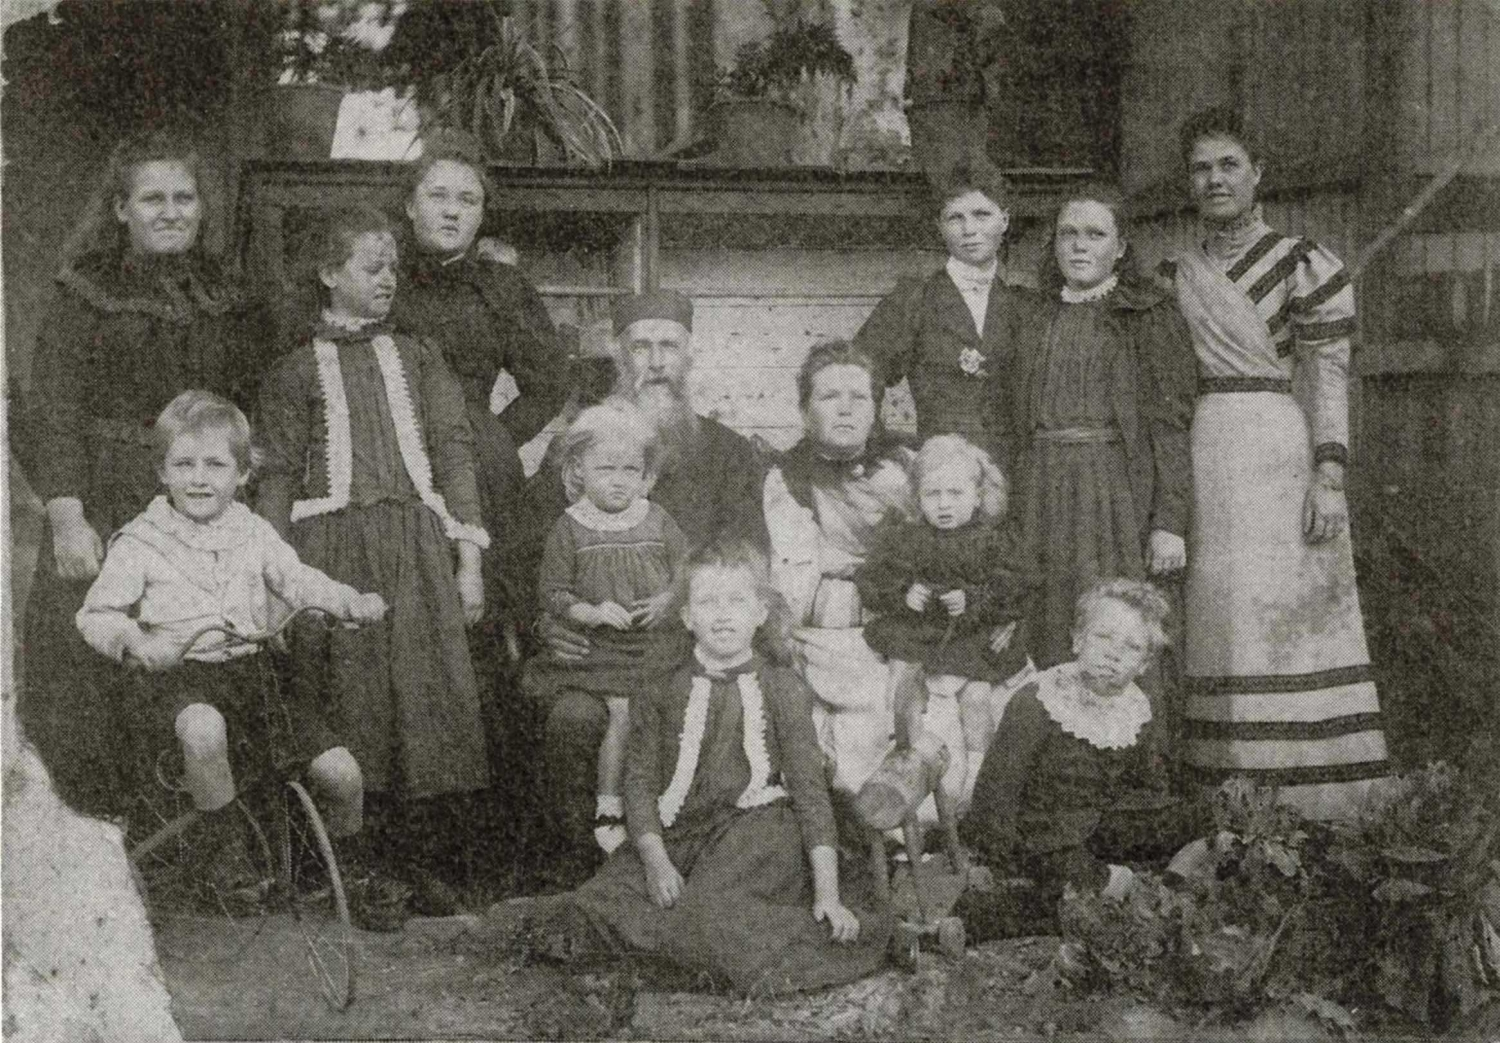 B/W photo of a group of people including young children, teenagers and elderly parents.